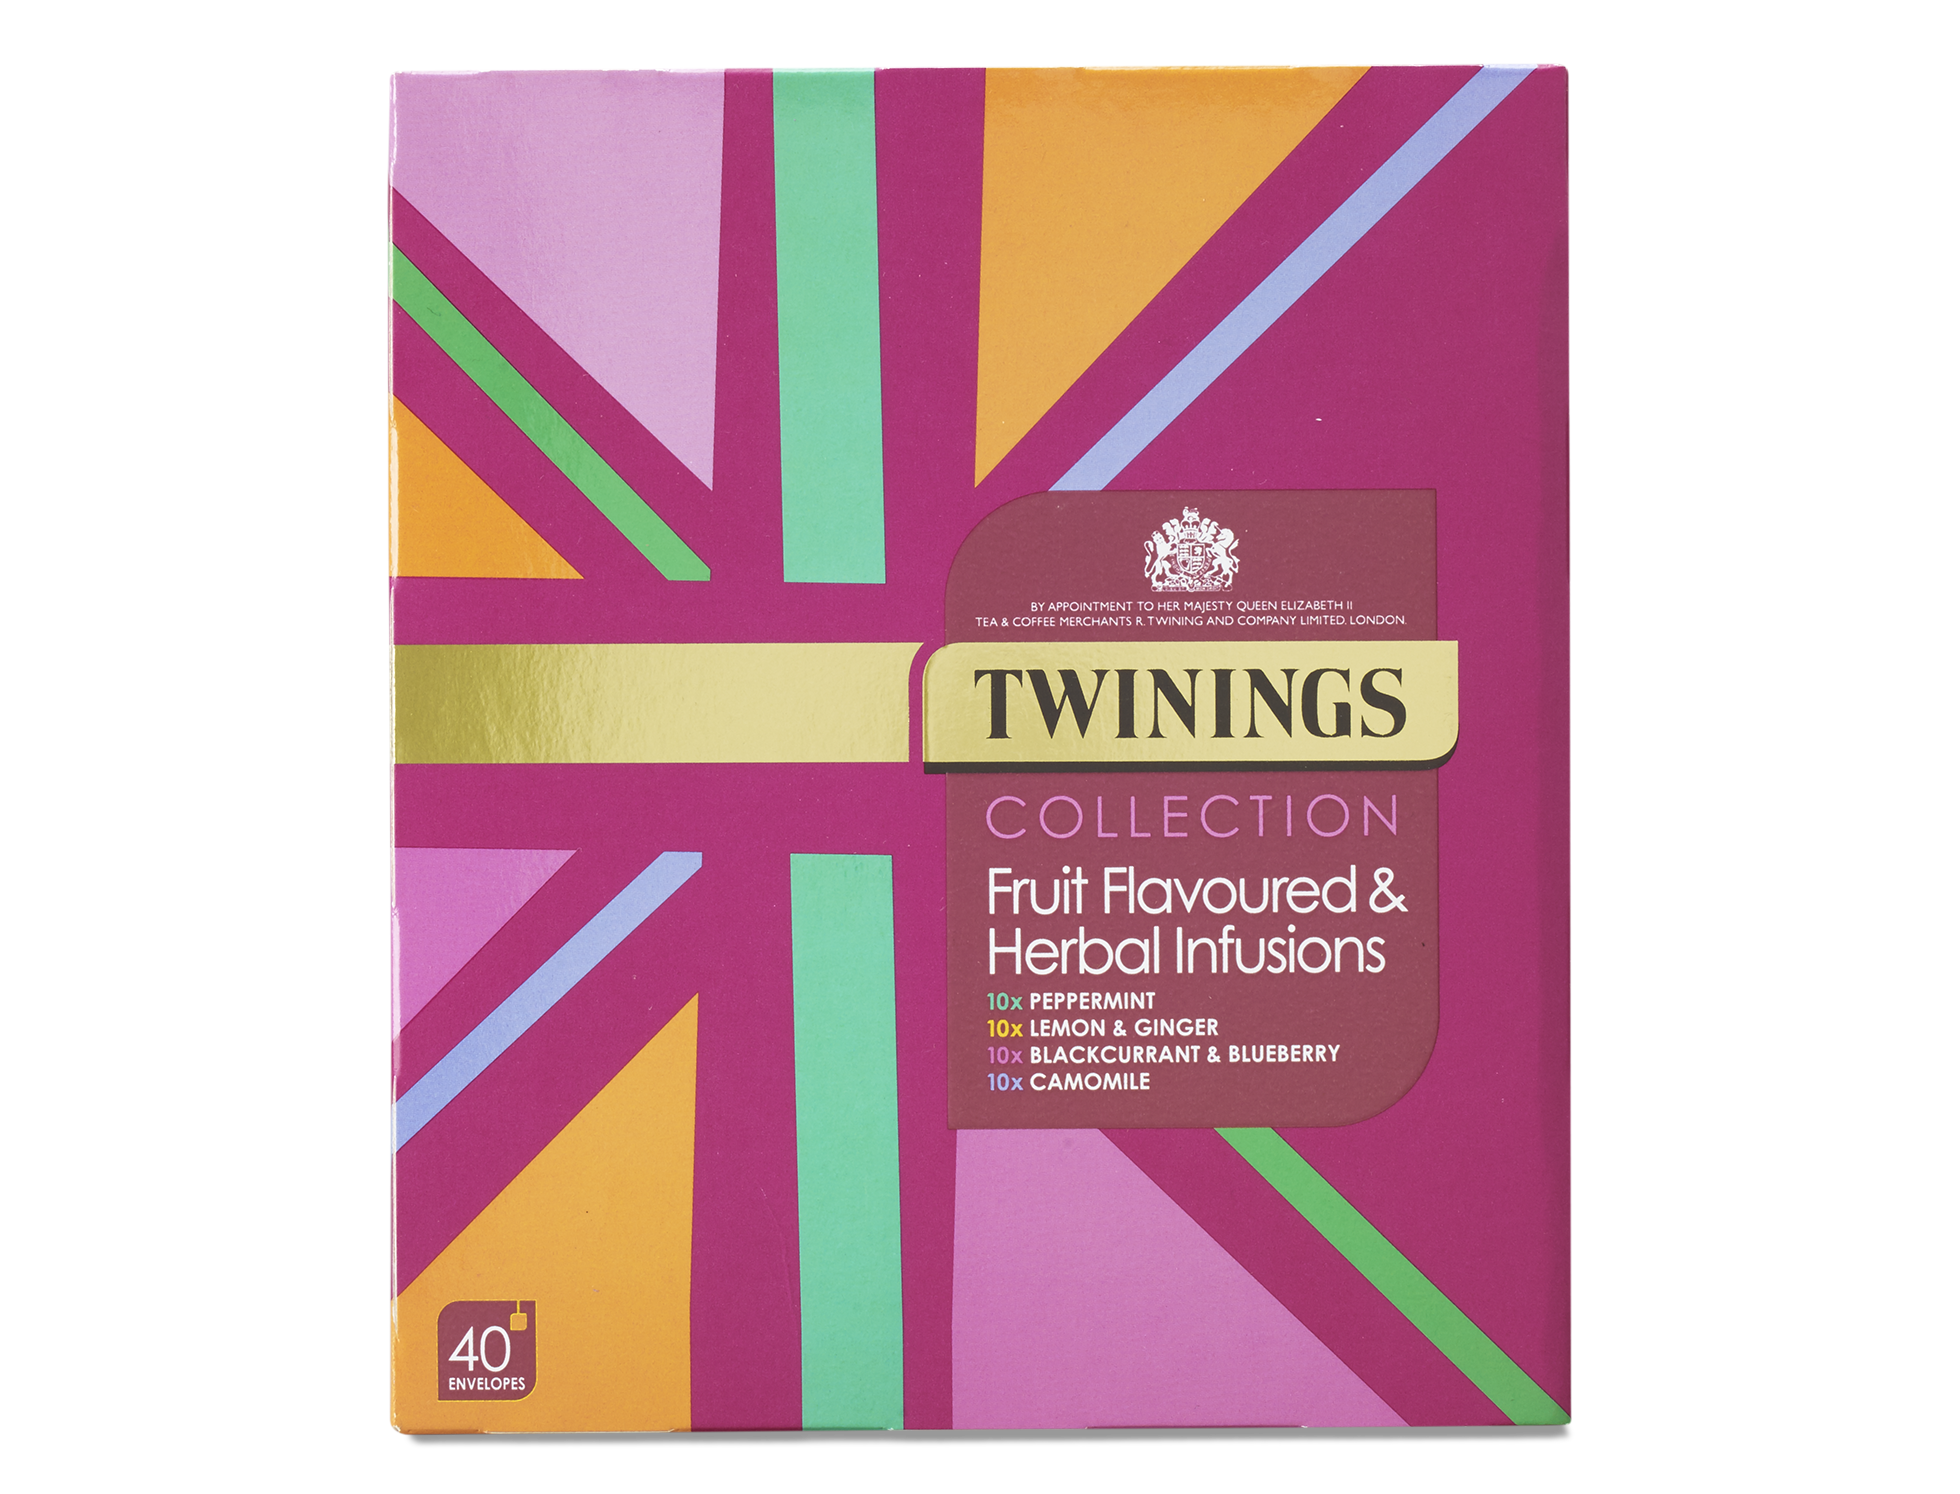 Product image of Twinings Collection Fruit Flavoured & Herbal Infusions - 40 Envelopes from Twinings Teashop